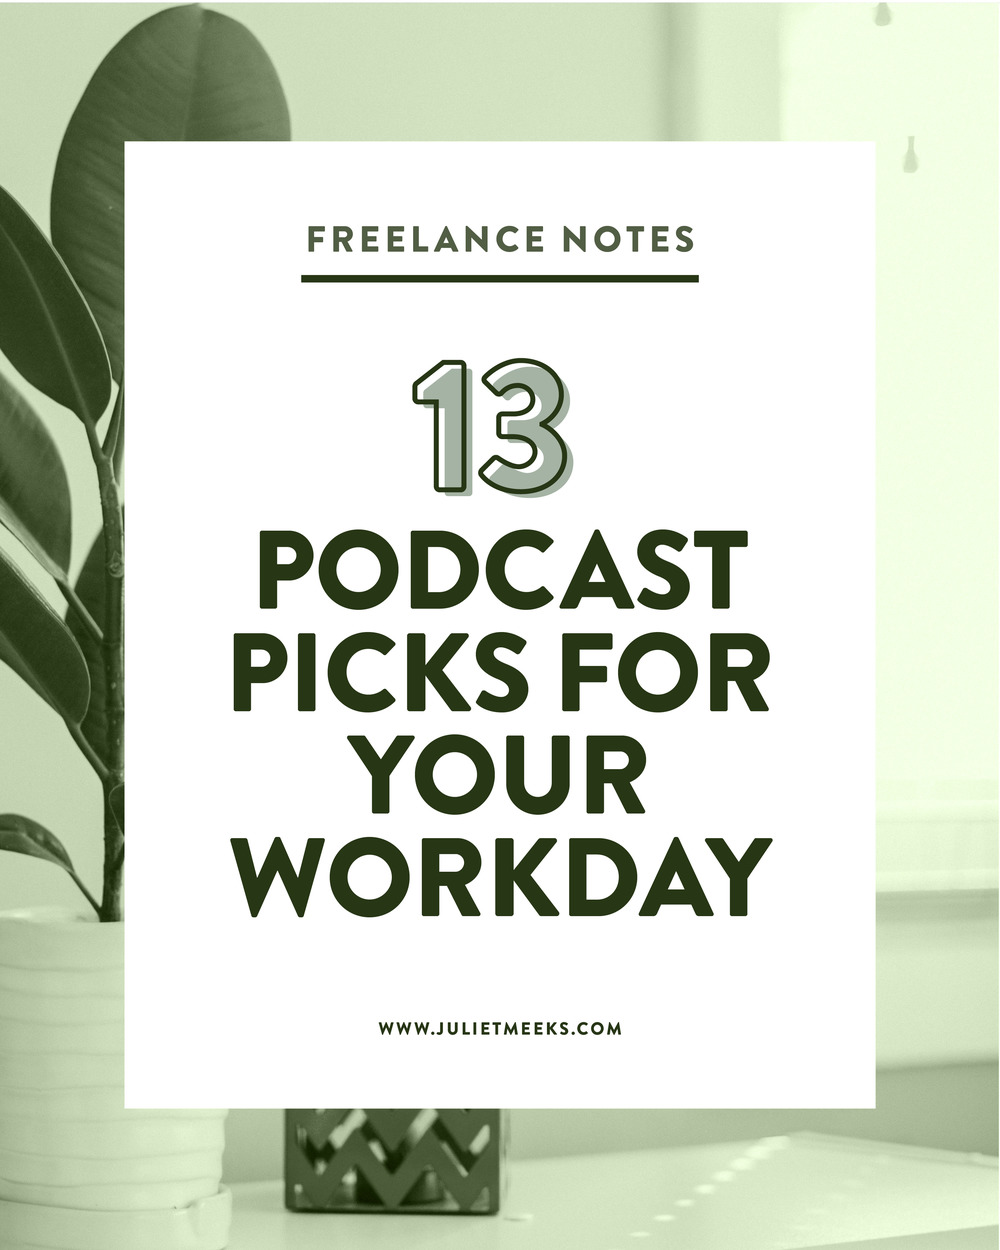 13 Podcast Picks for your Workday